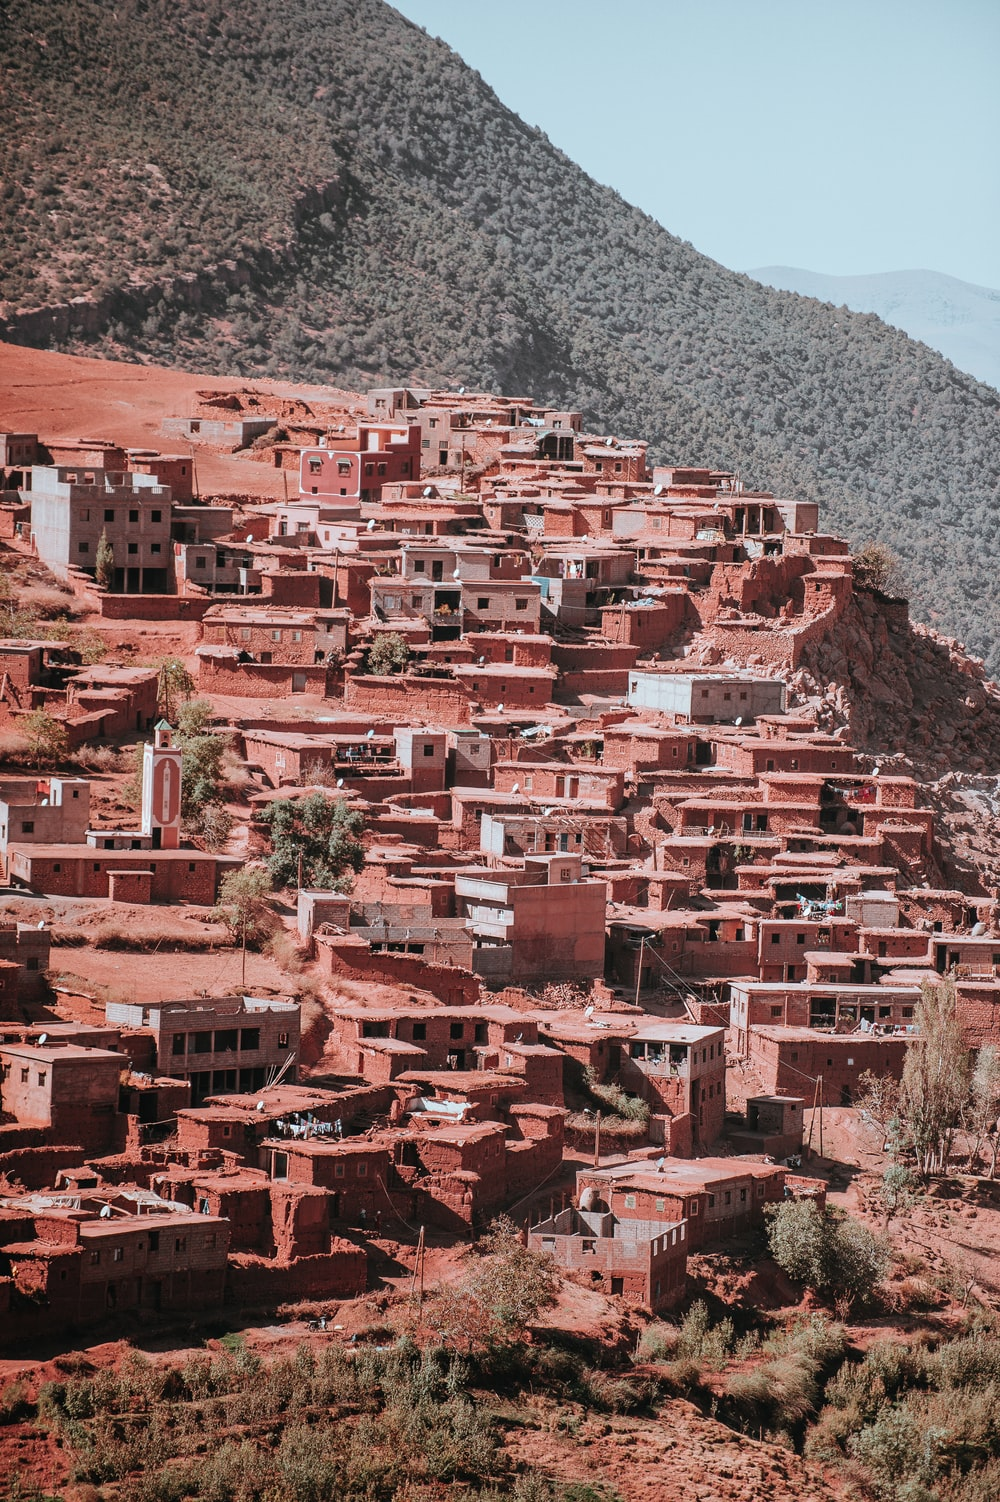 villages in edge of mountain